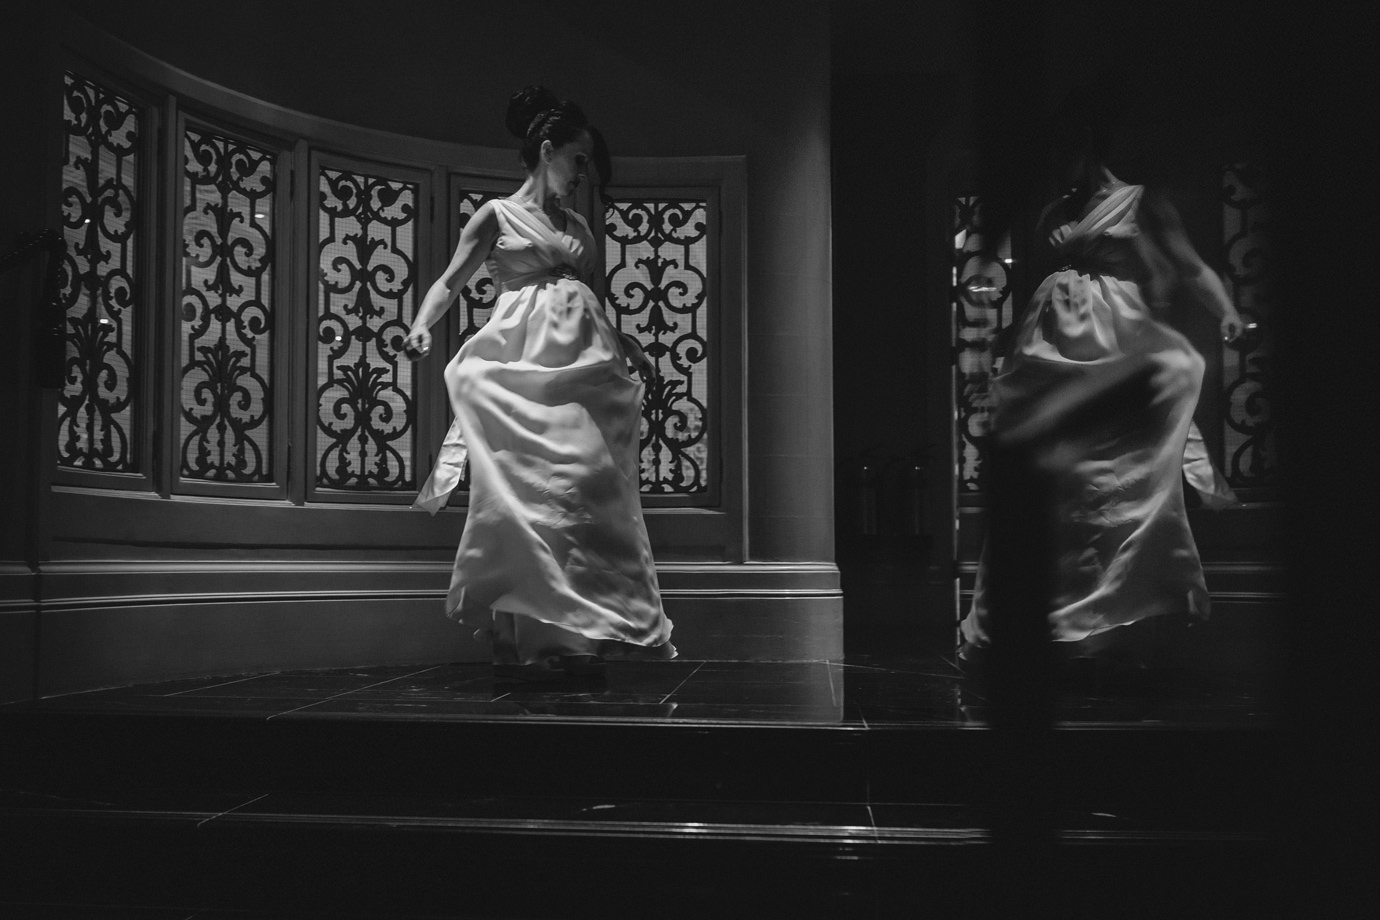 Swirling the dress - art-deco at the Savoy hotel, London wedding photography